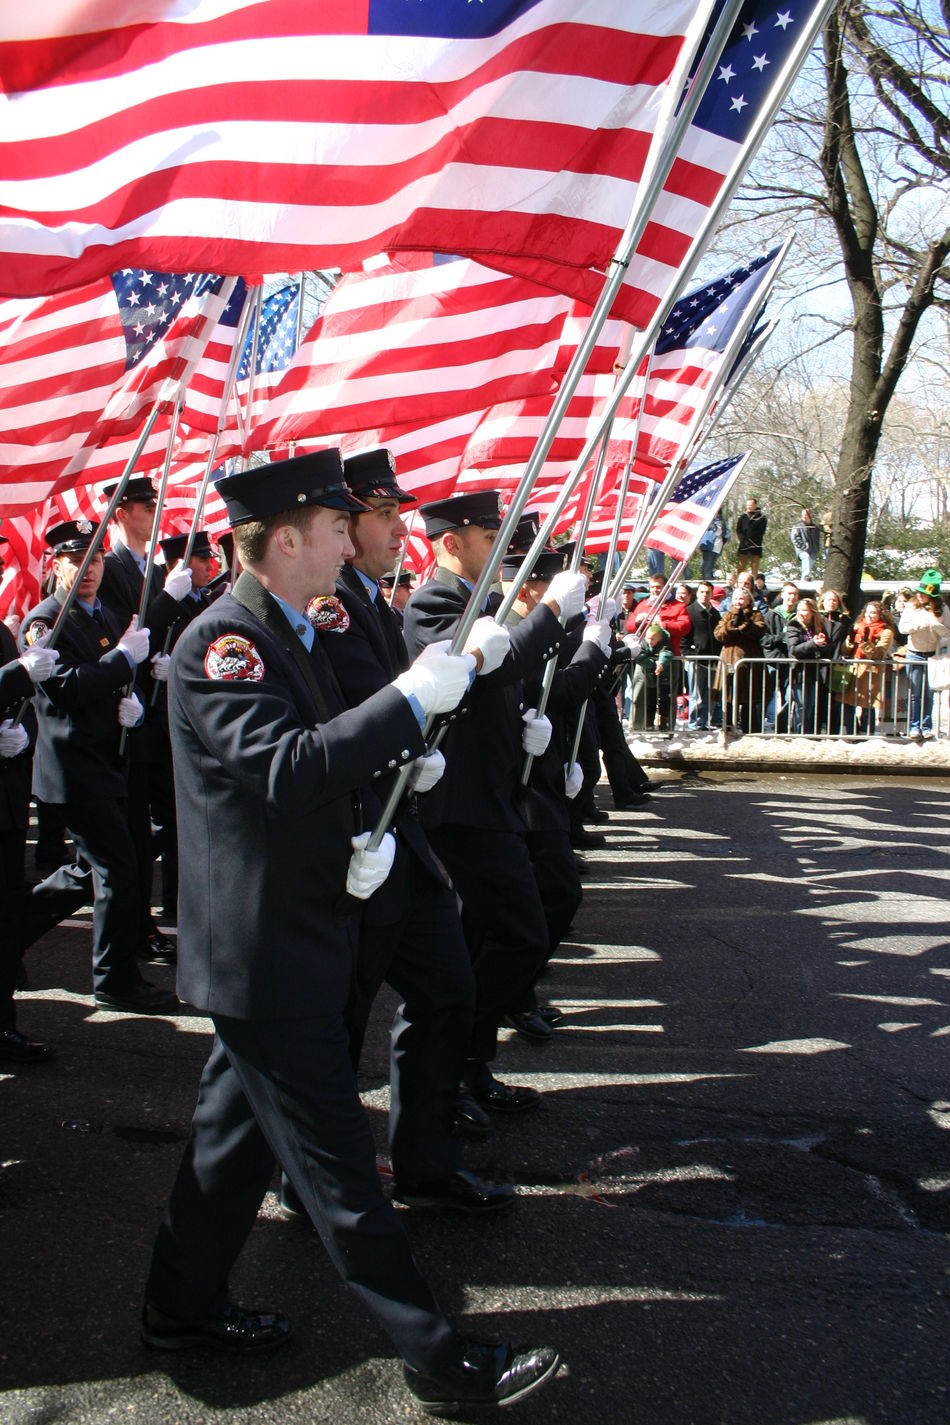 American Flag Fifth Avenue NYC Firemen Marching Flags Full Length Marching Band Outdoors Parade Real People